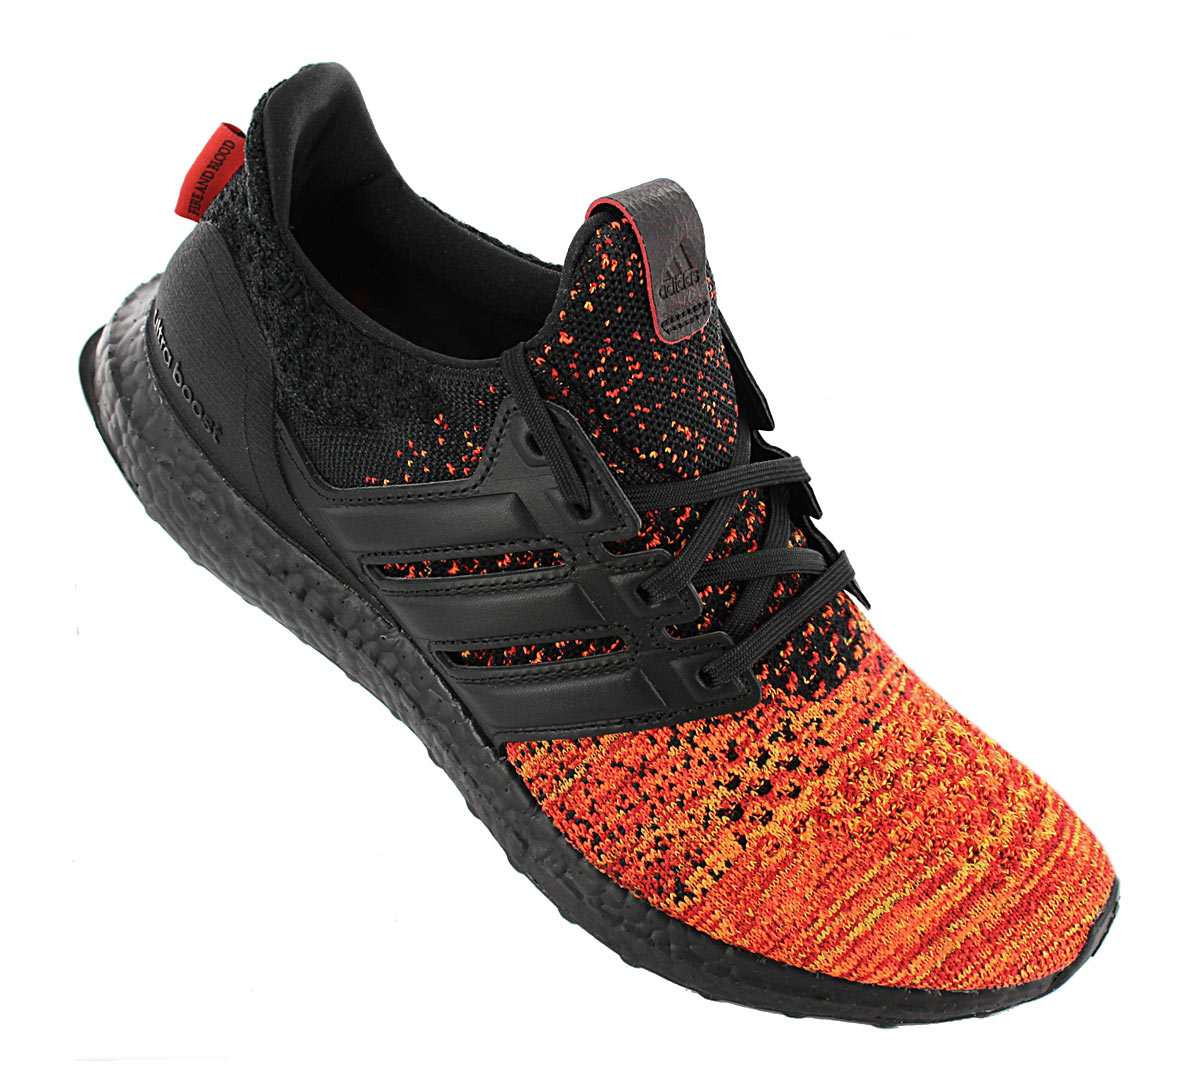 f1e349df8 Adidas Ultra Boost x Got - Game of Thrones - Targaryen Dragons ...